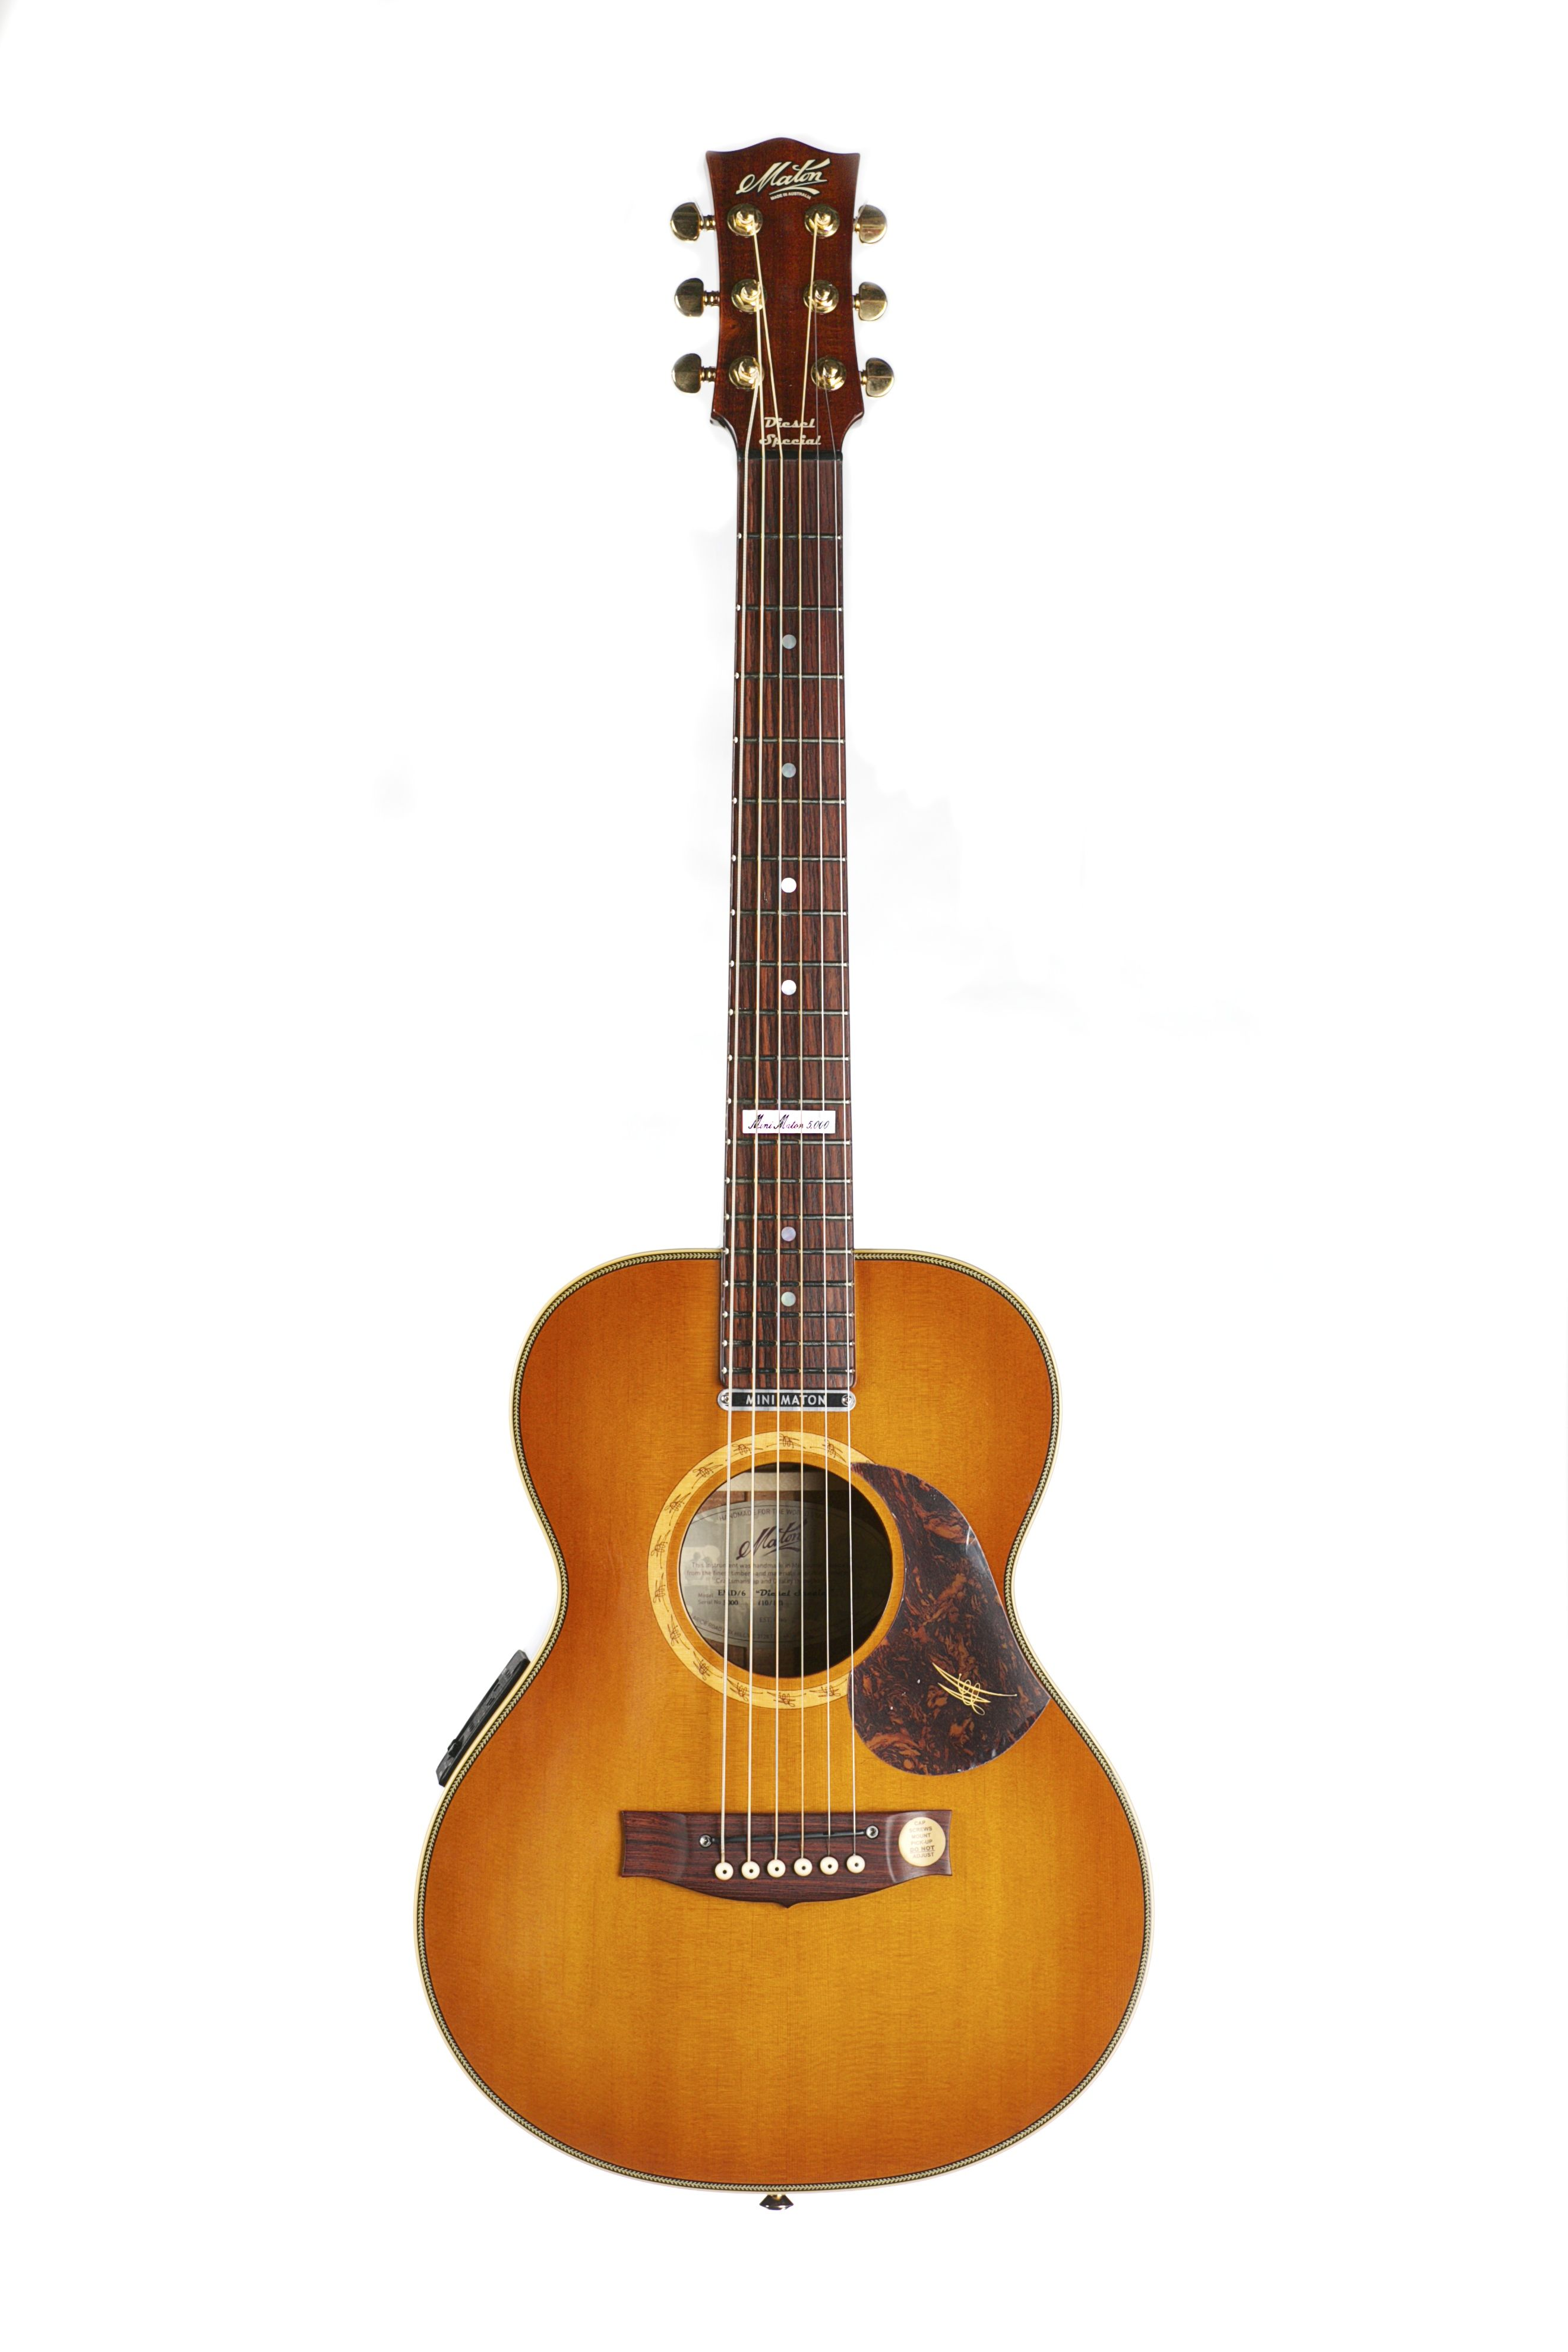 Australian Handmade Acoustic Diesel 5000 From Maton Front View Guitar Acoustic Music Instruments